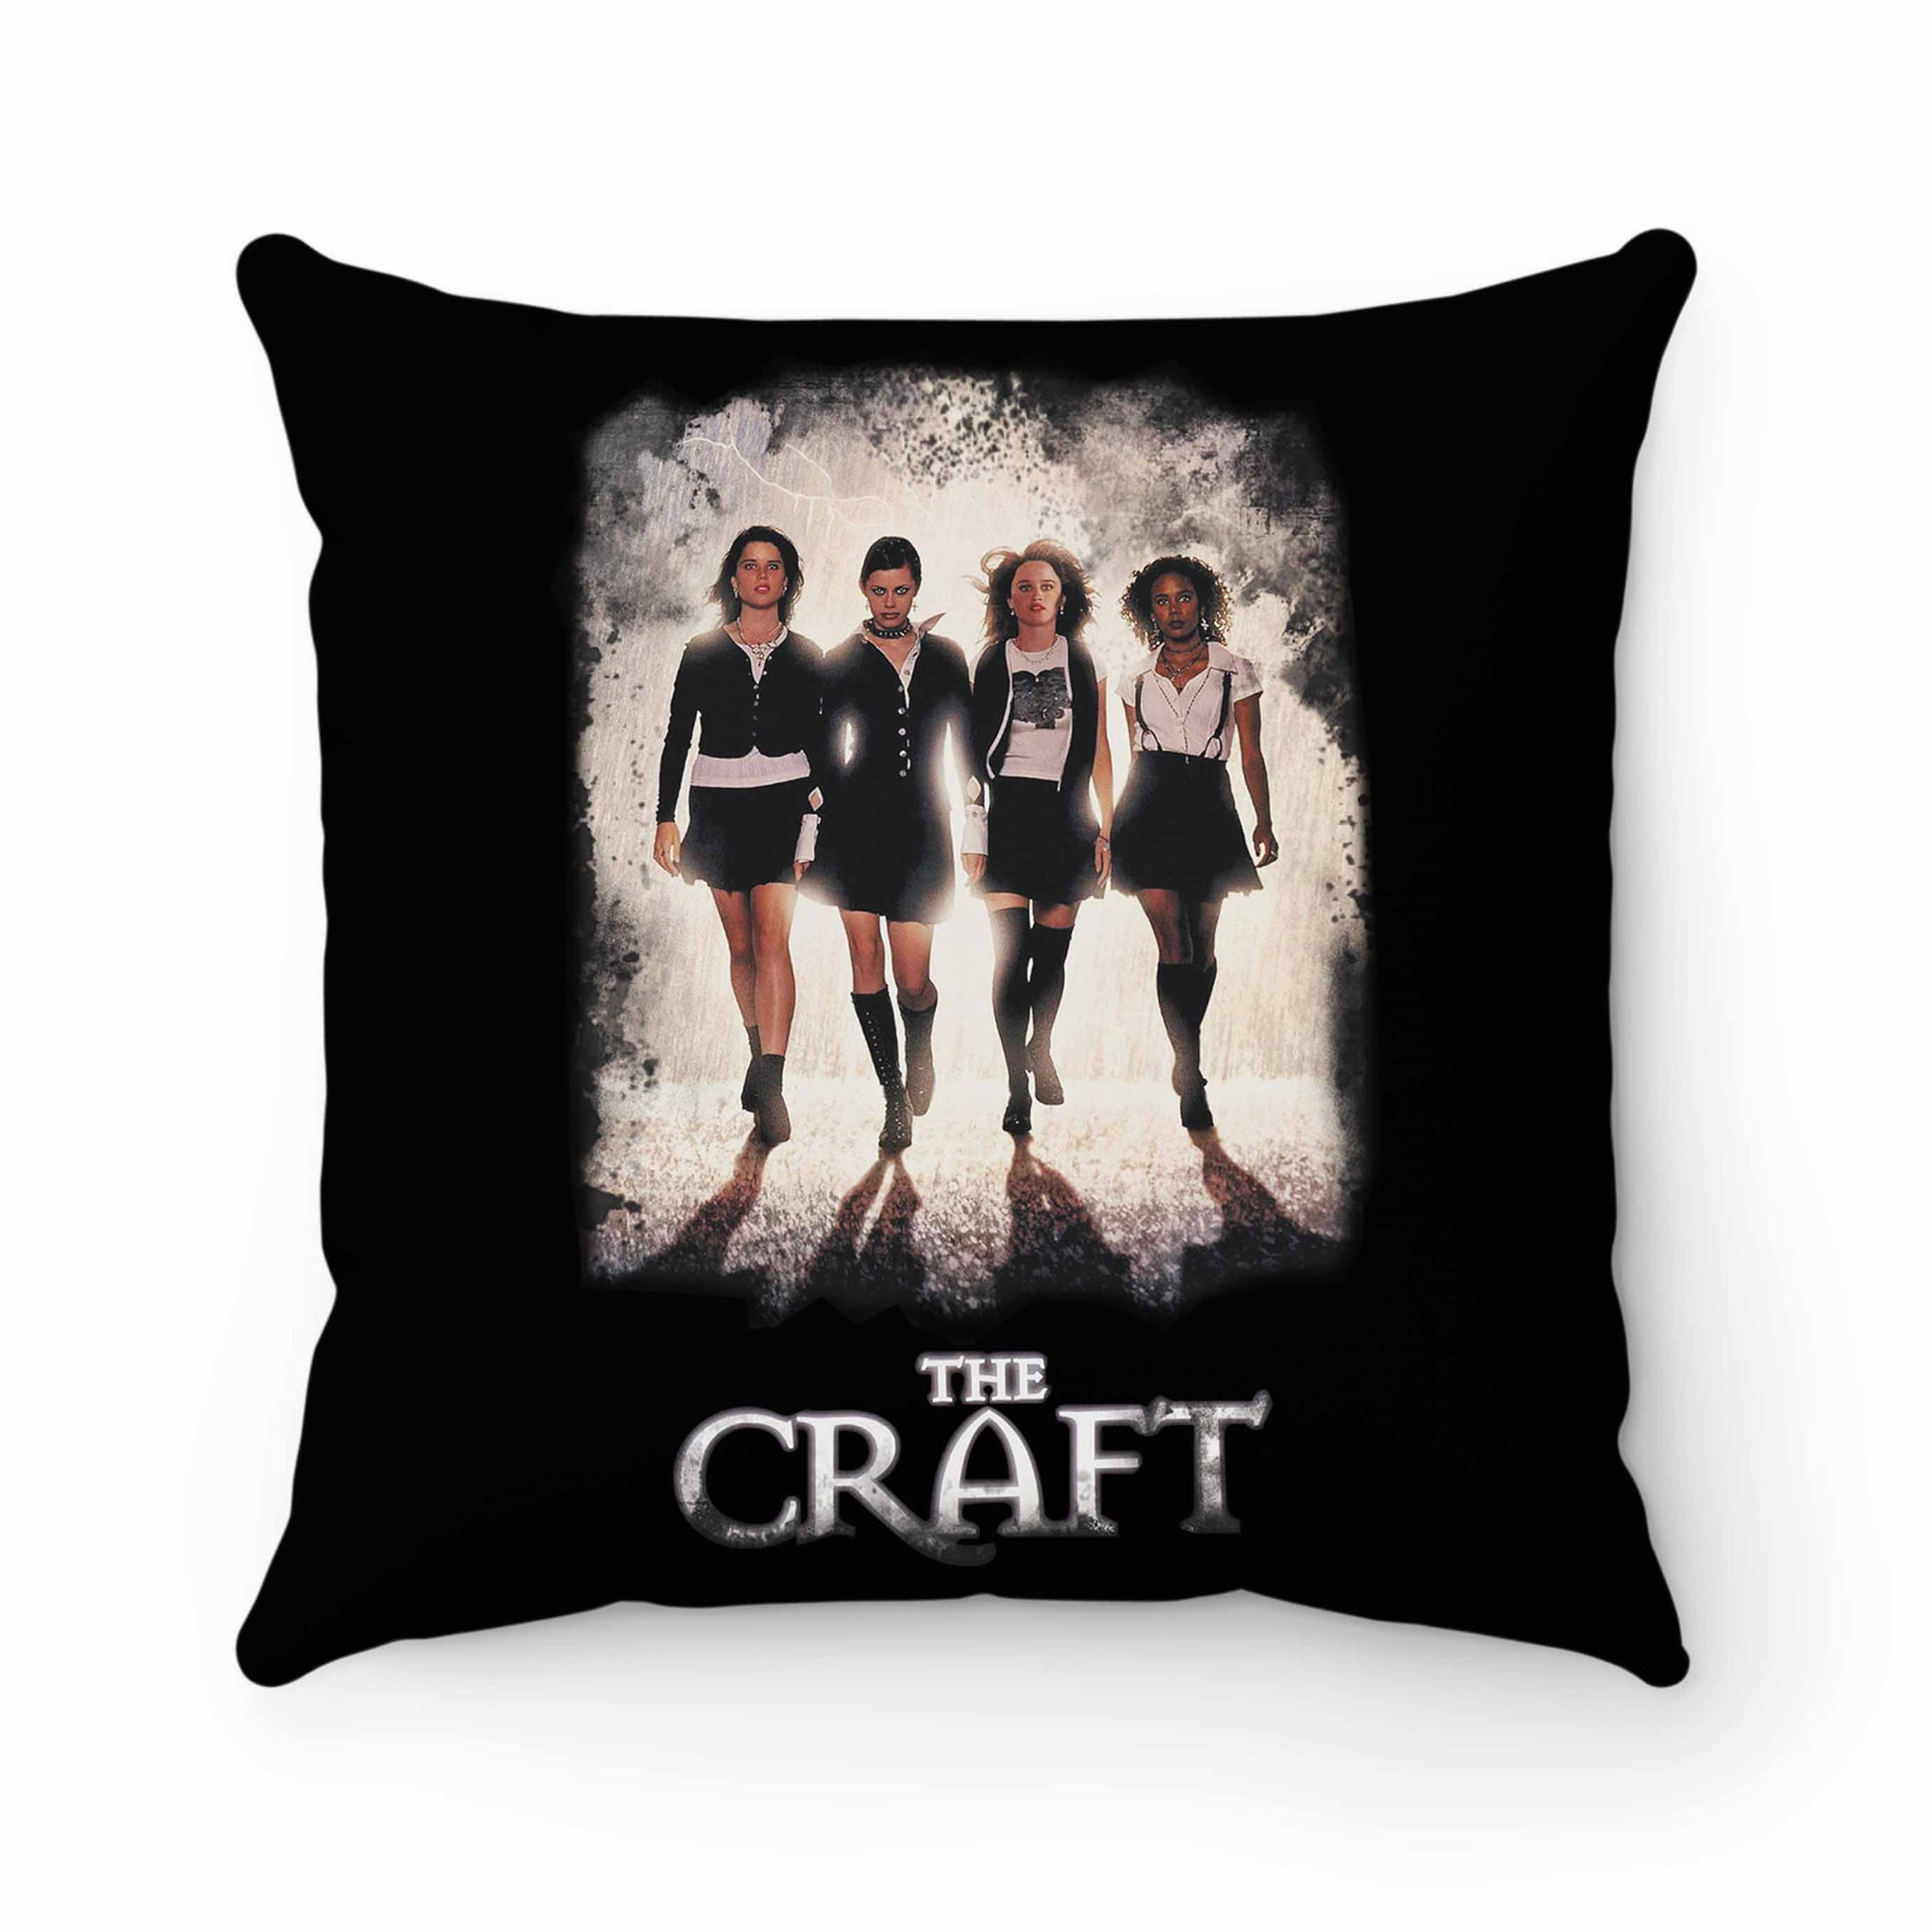 The Craft Pillow Case Cover